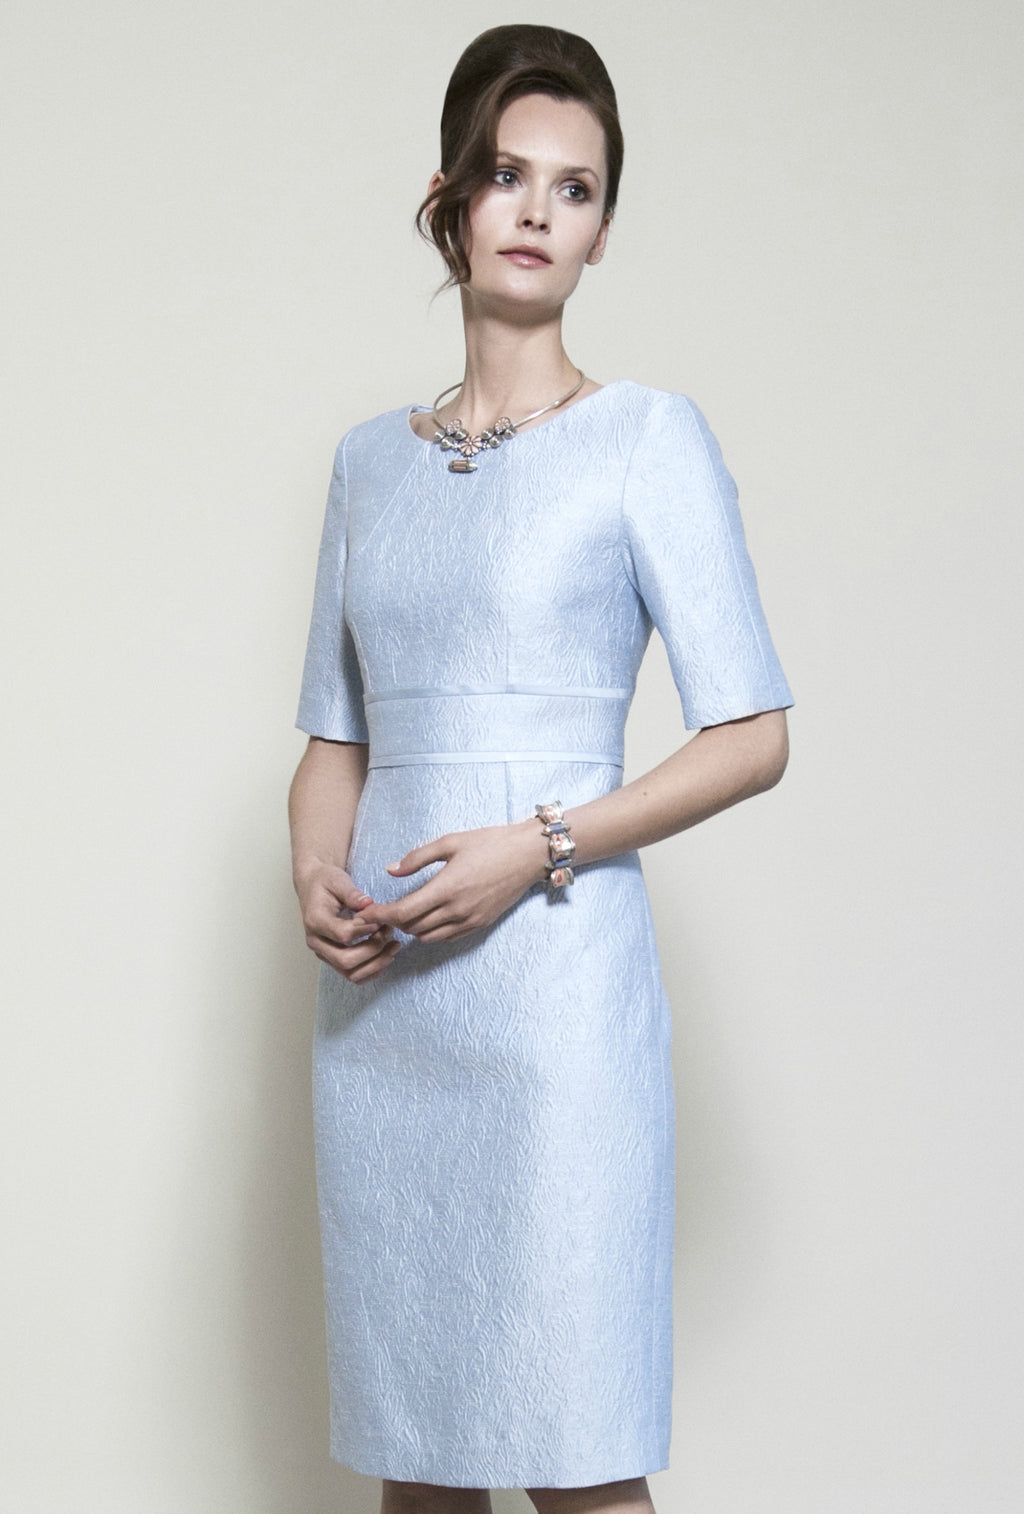 pale blue dress with sleeves chic modern mother of the bride outfit uk